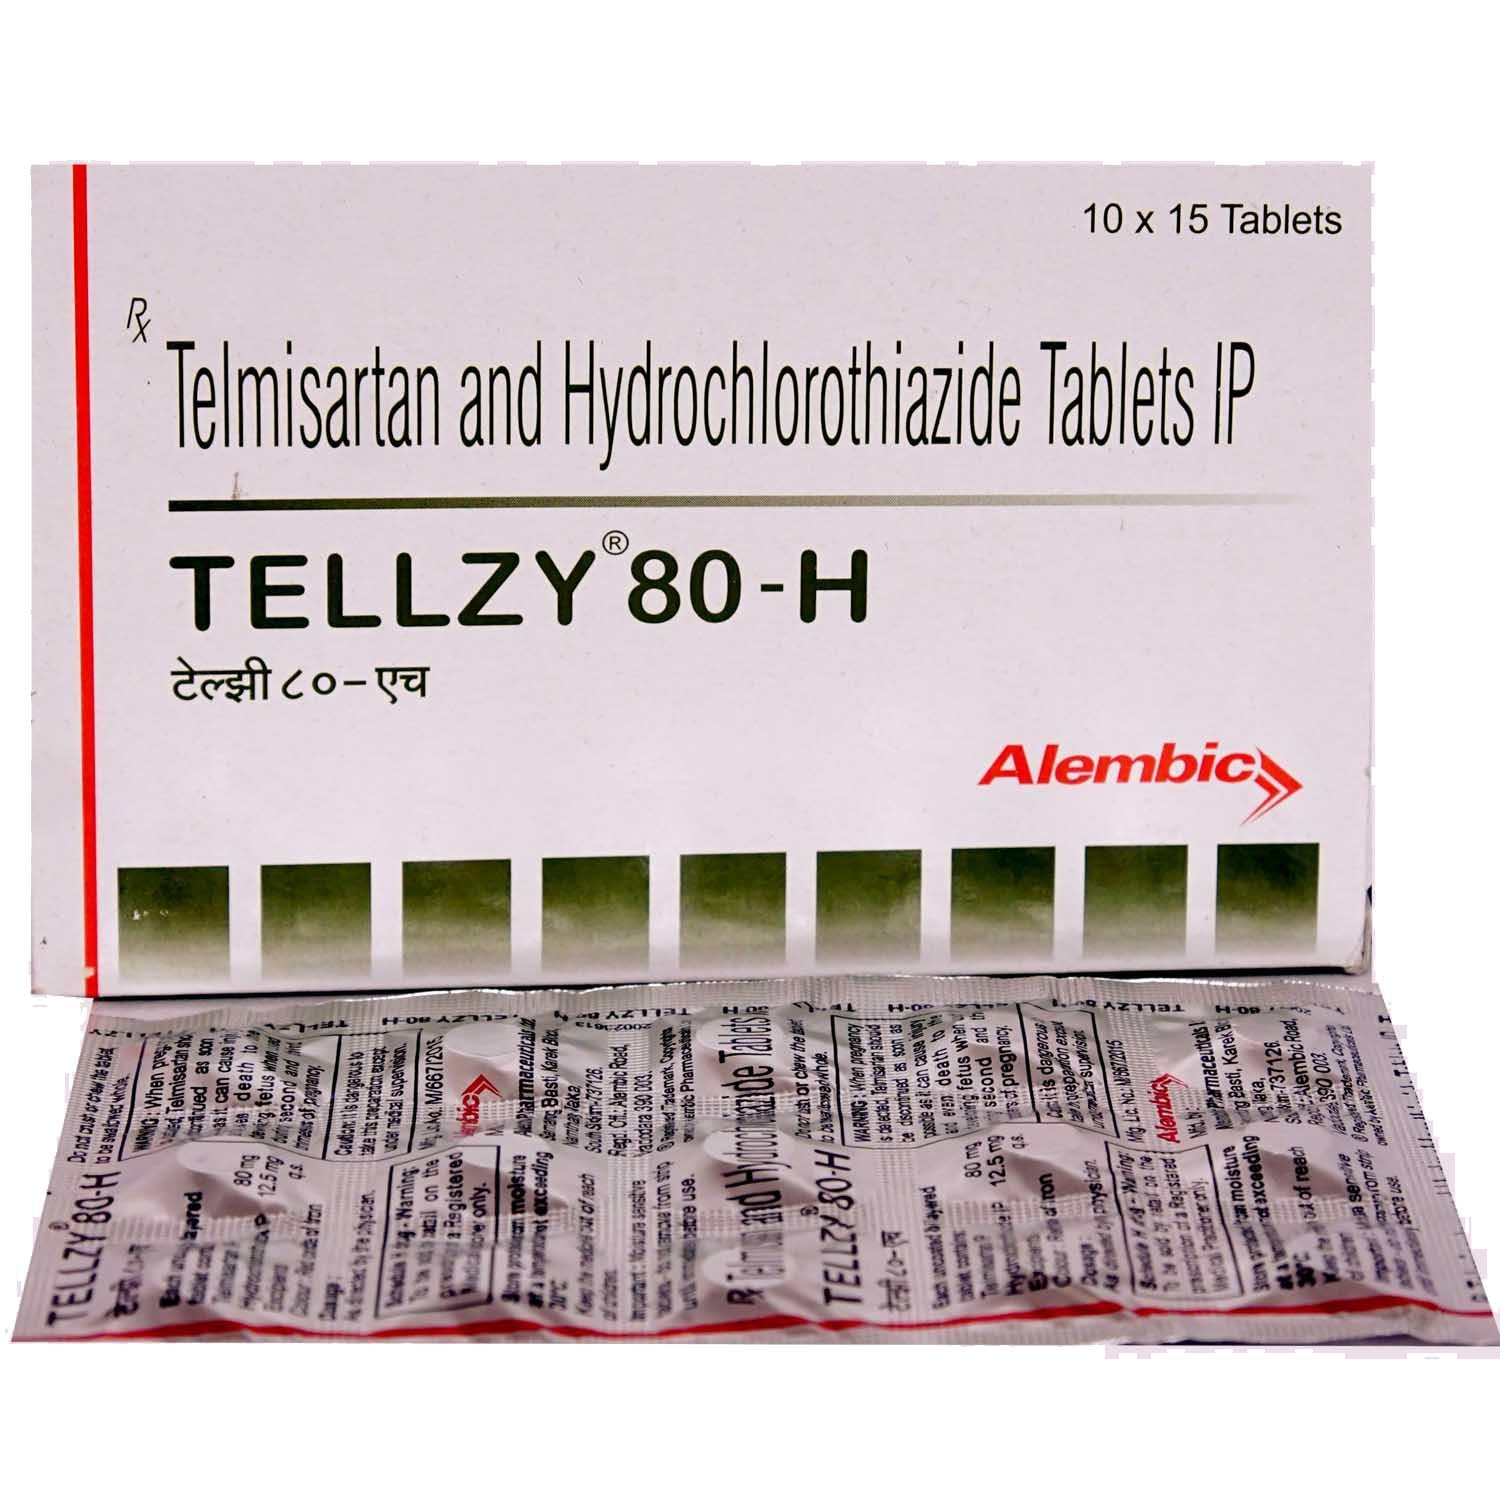 Tellzy 80-H Tablet 15's